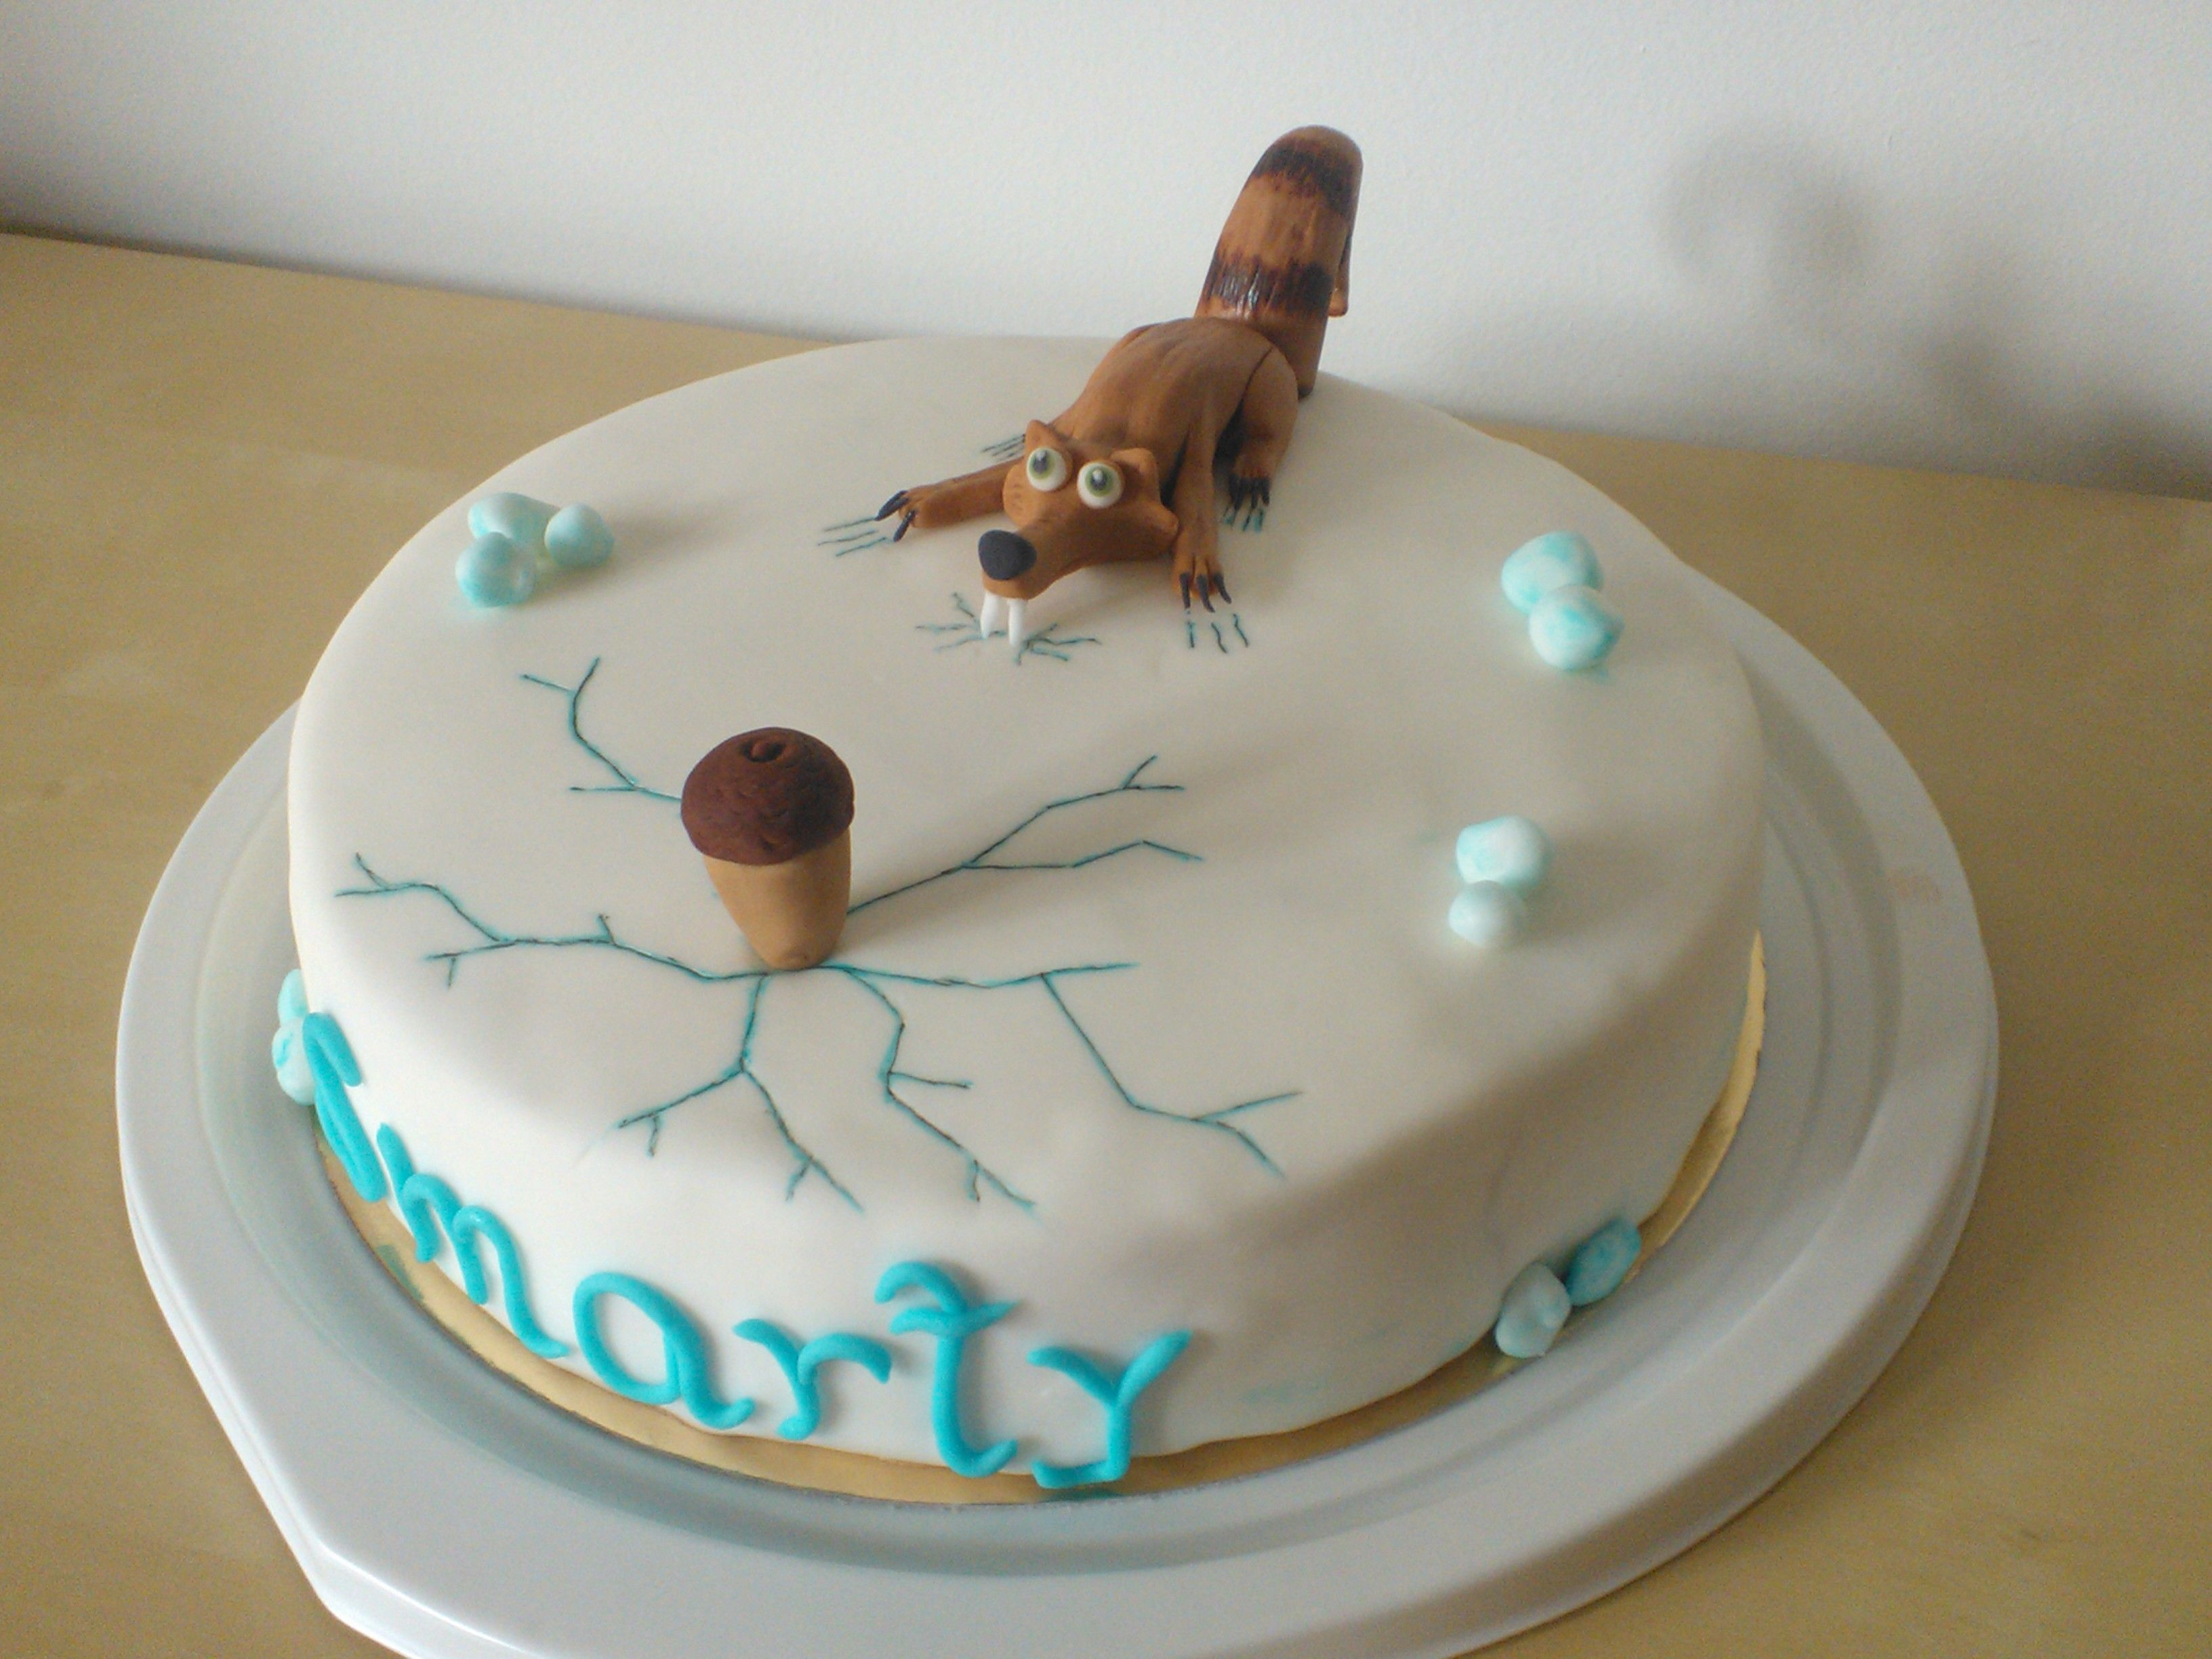 torta ice age ice age cake my cakes pinterest ice age cake and cake. Black Bedroom Furniture Sets. Home Design Ideas